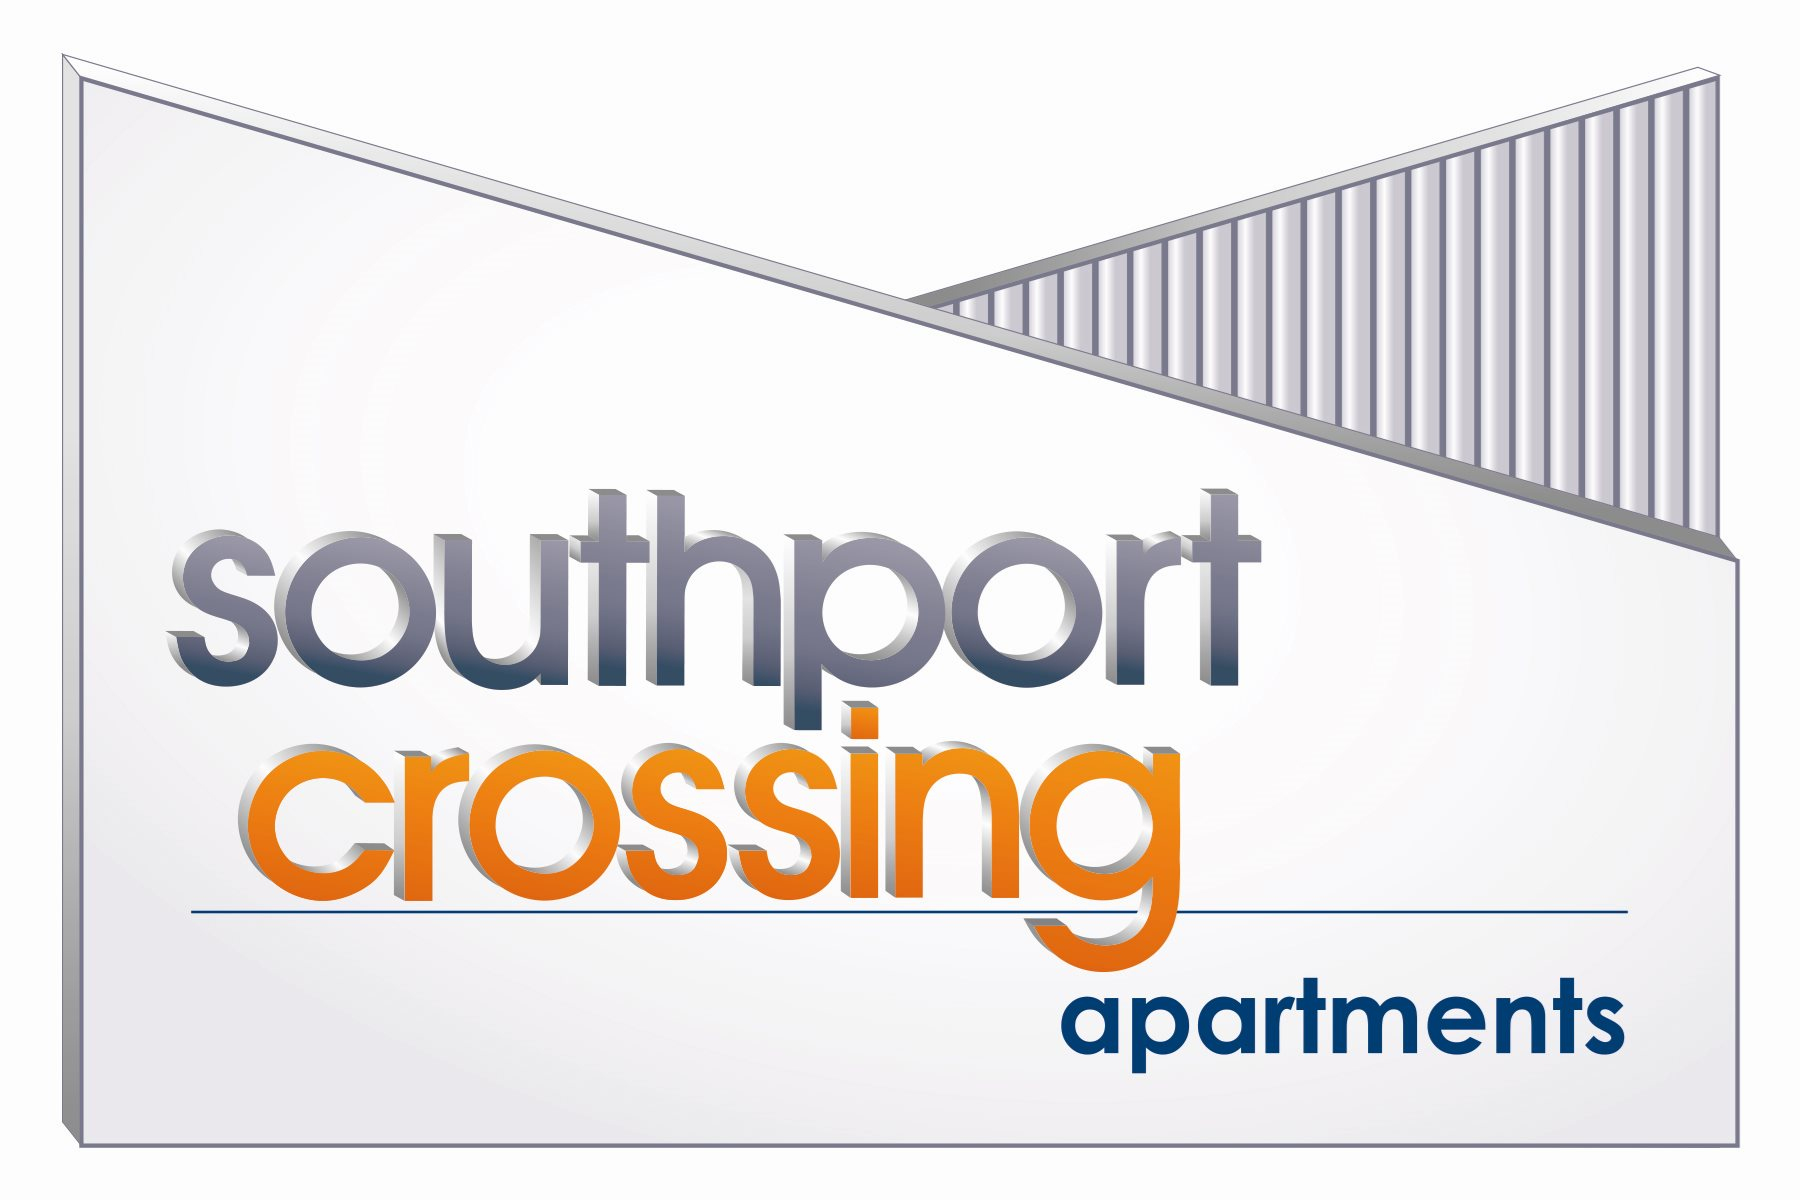 Southport Crossing Logo